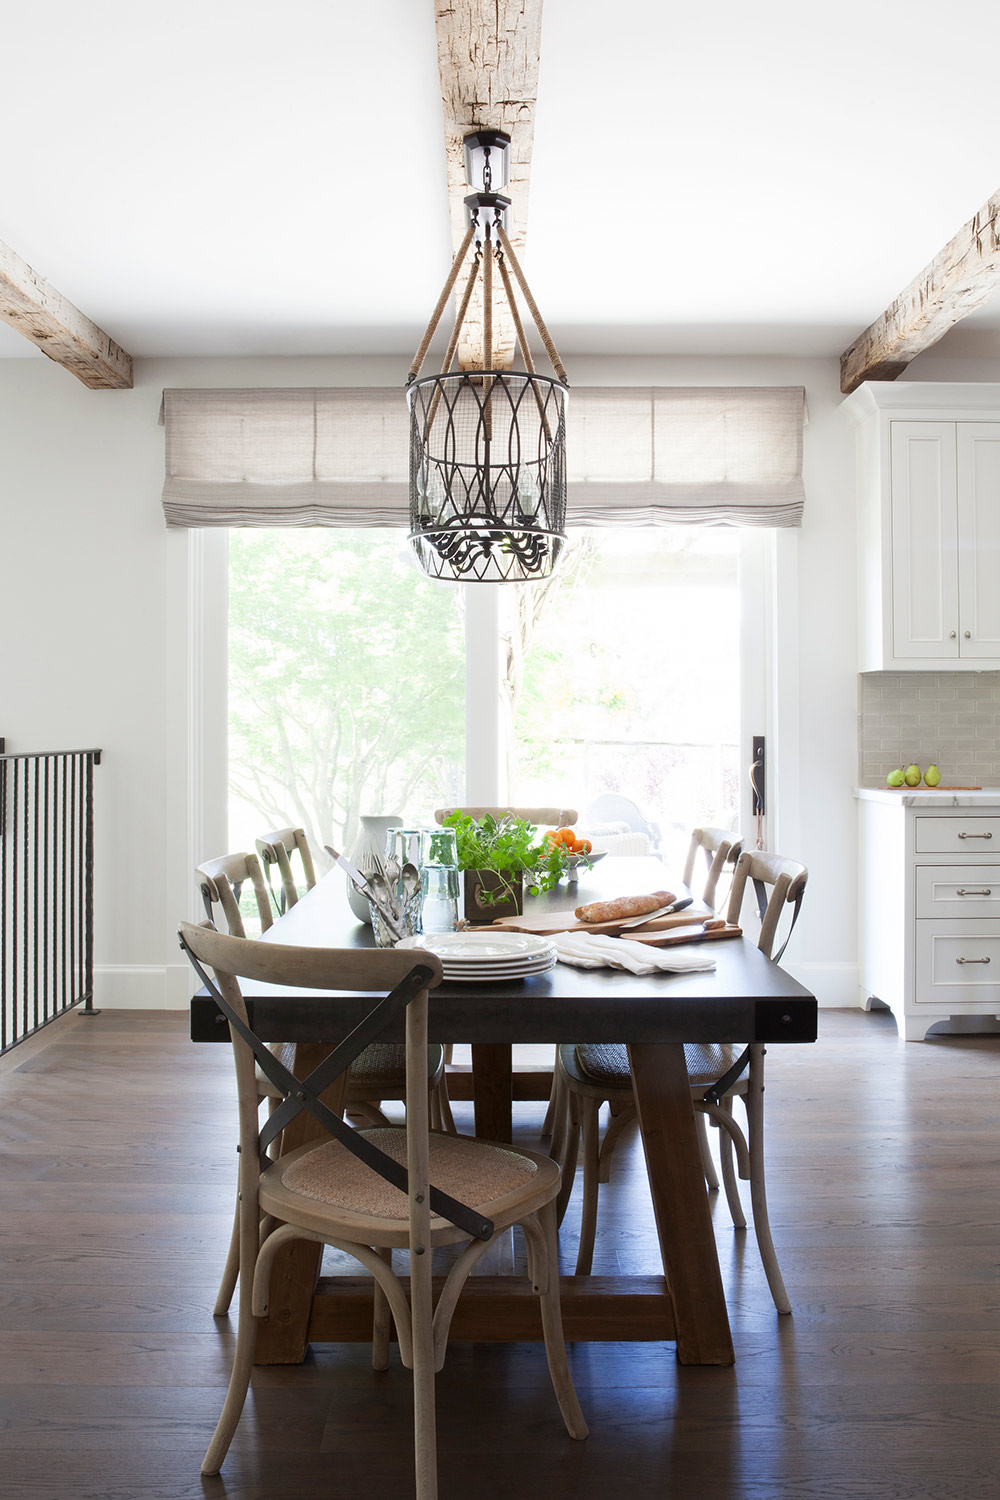 Danville Residence Dining Space